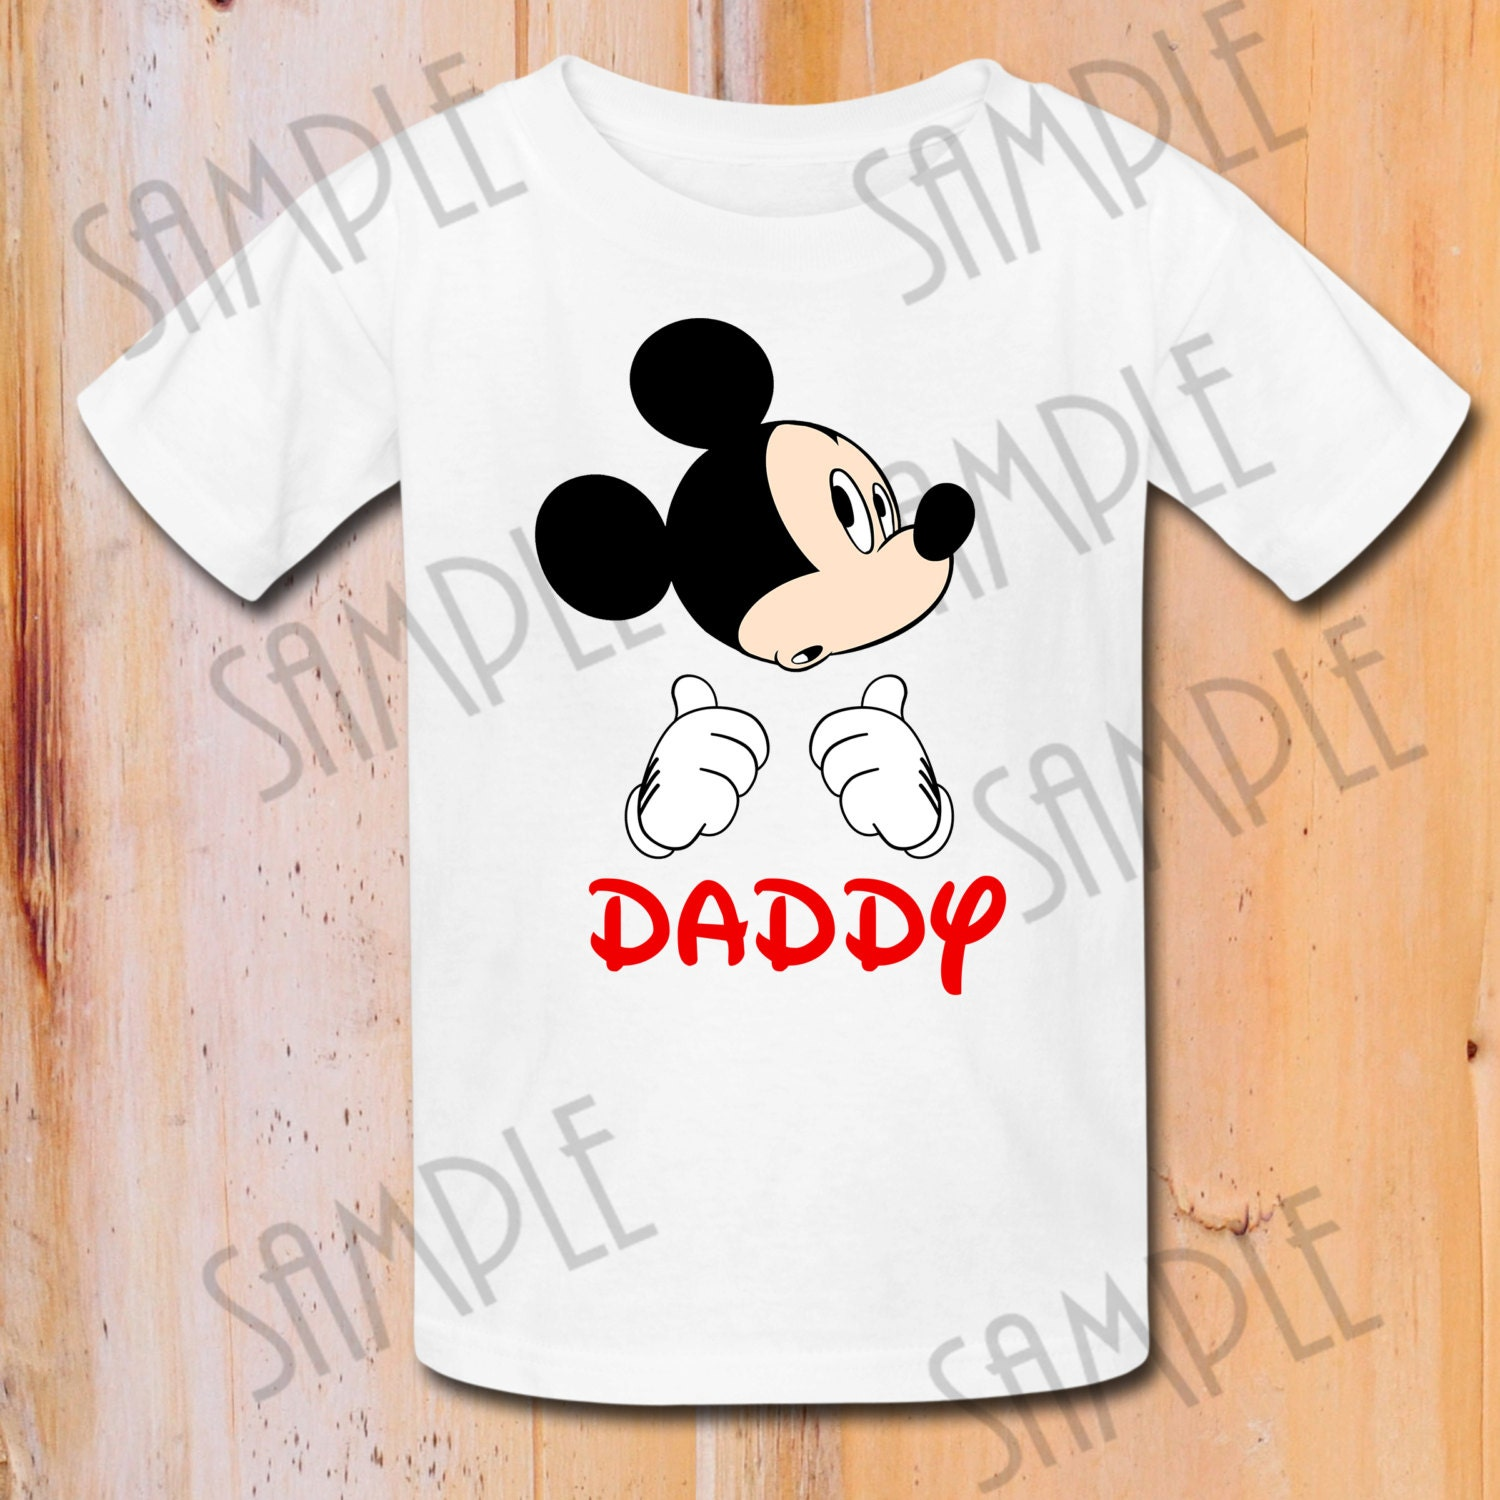 Design your own t-shirt iron on transfer - T Shirt Disney Mickey Mouse Iron On Transfer Printable Daddy Digital Download Personalized Mickey Birthday Shirt Matching Family Shirts